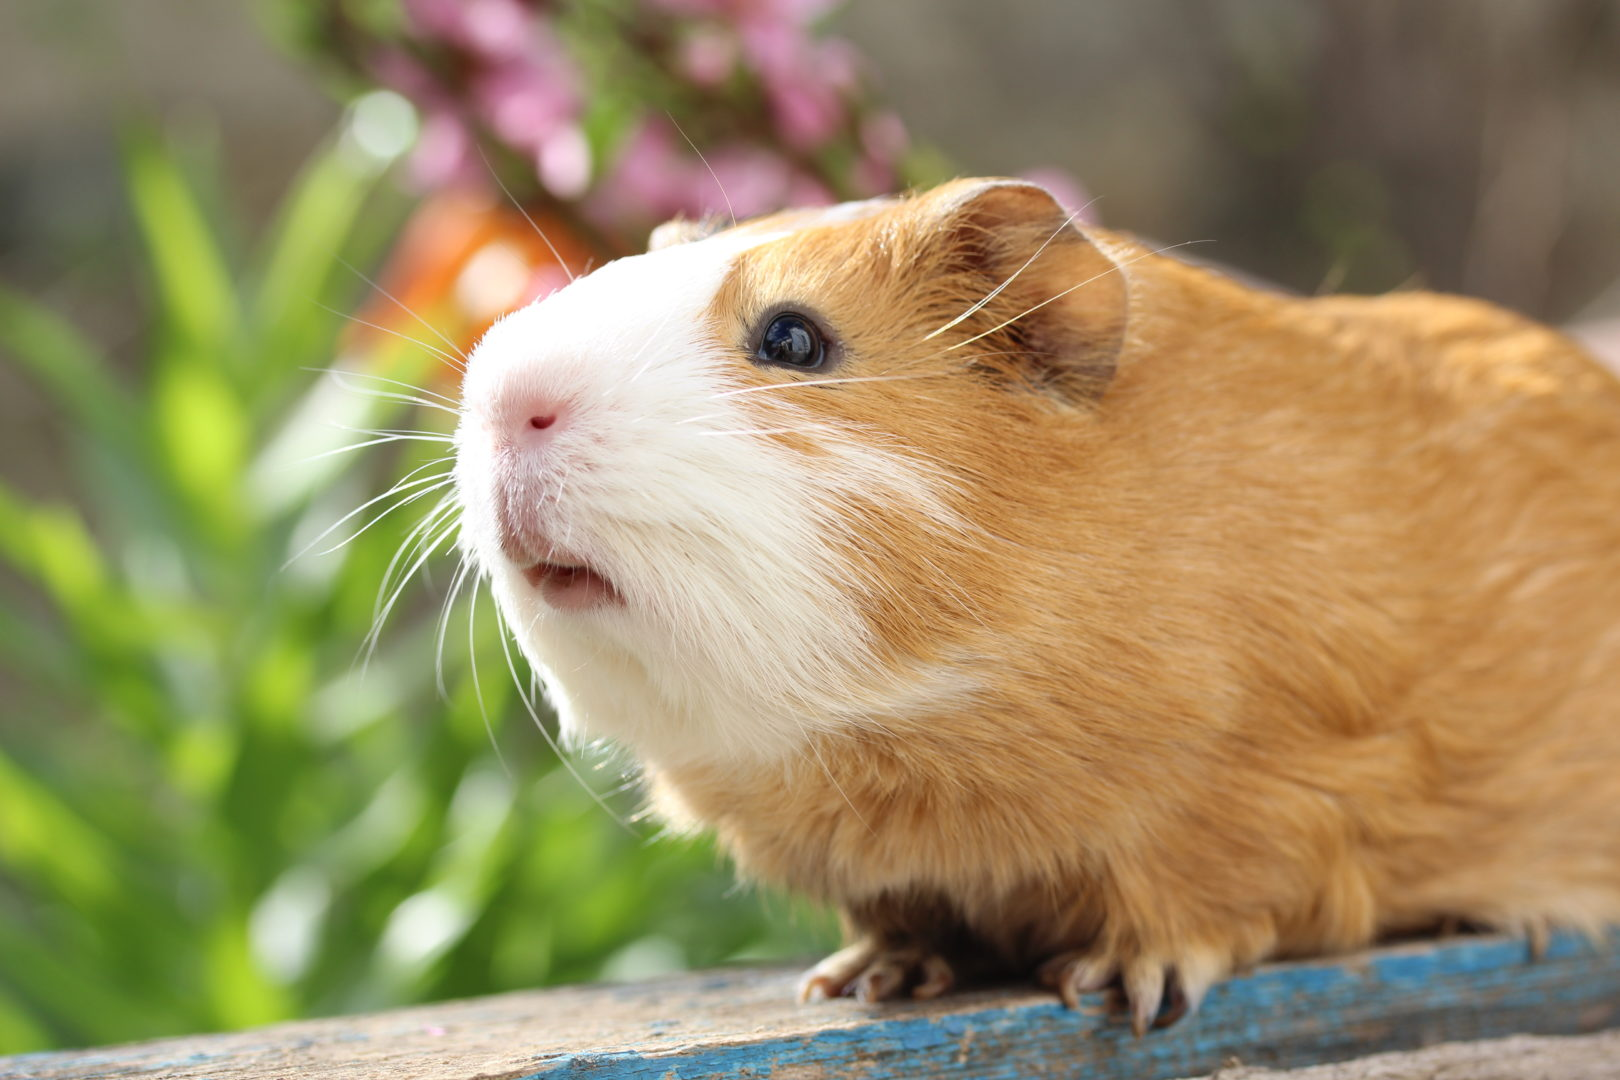 Guinea pig sitting on board in front of flowers